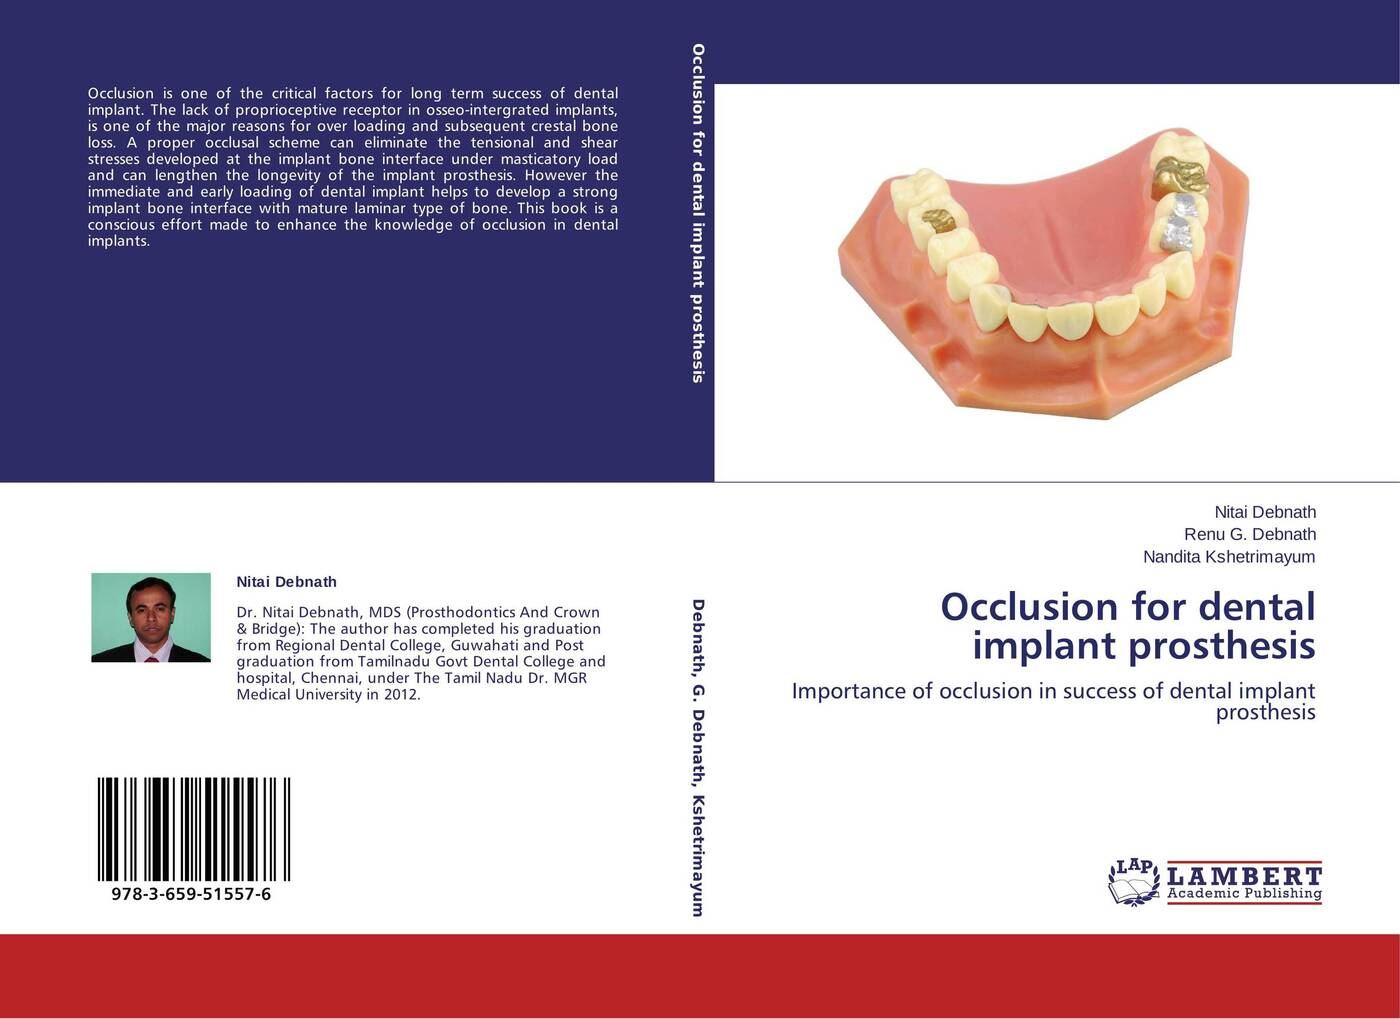 Nitai Debnath,Renu G. Debnath and Nandita Kshetrimayum Occlusion for dental implant prosthesis цена